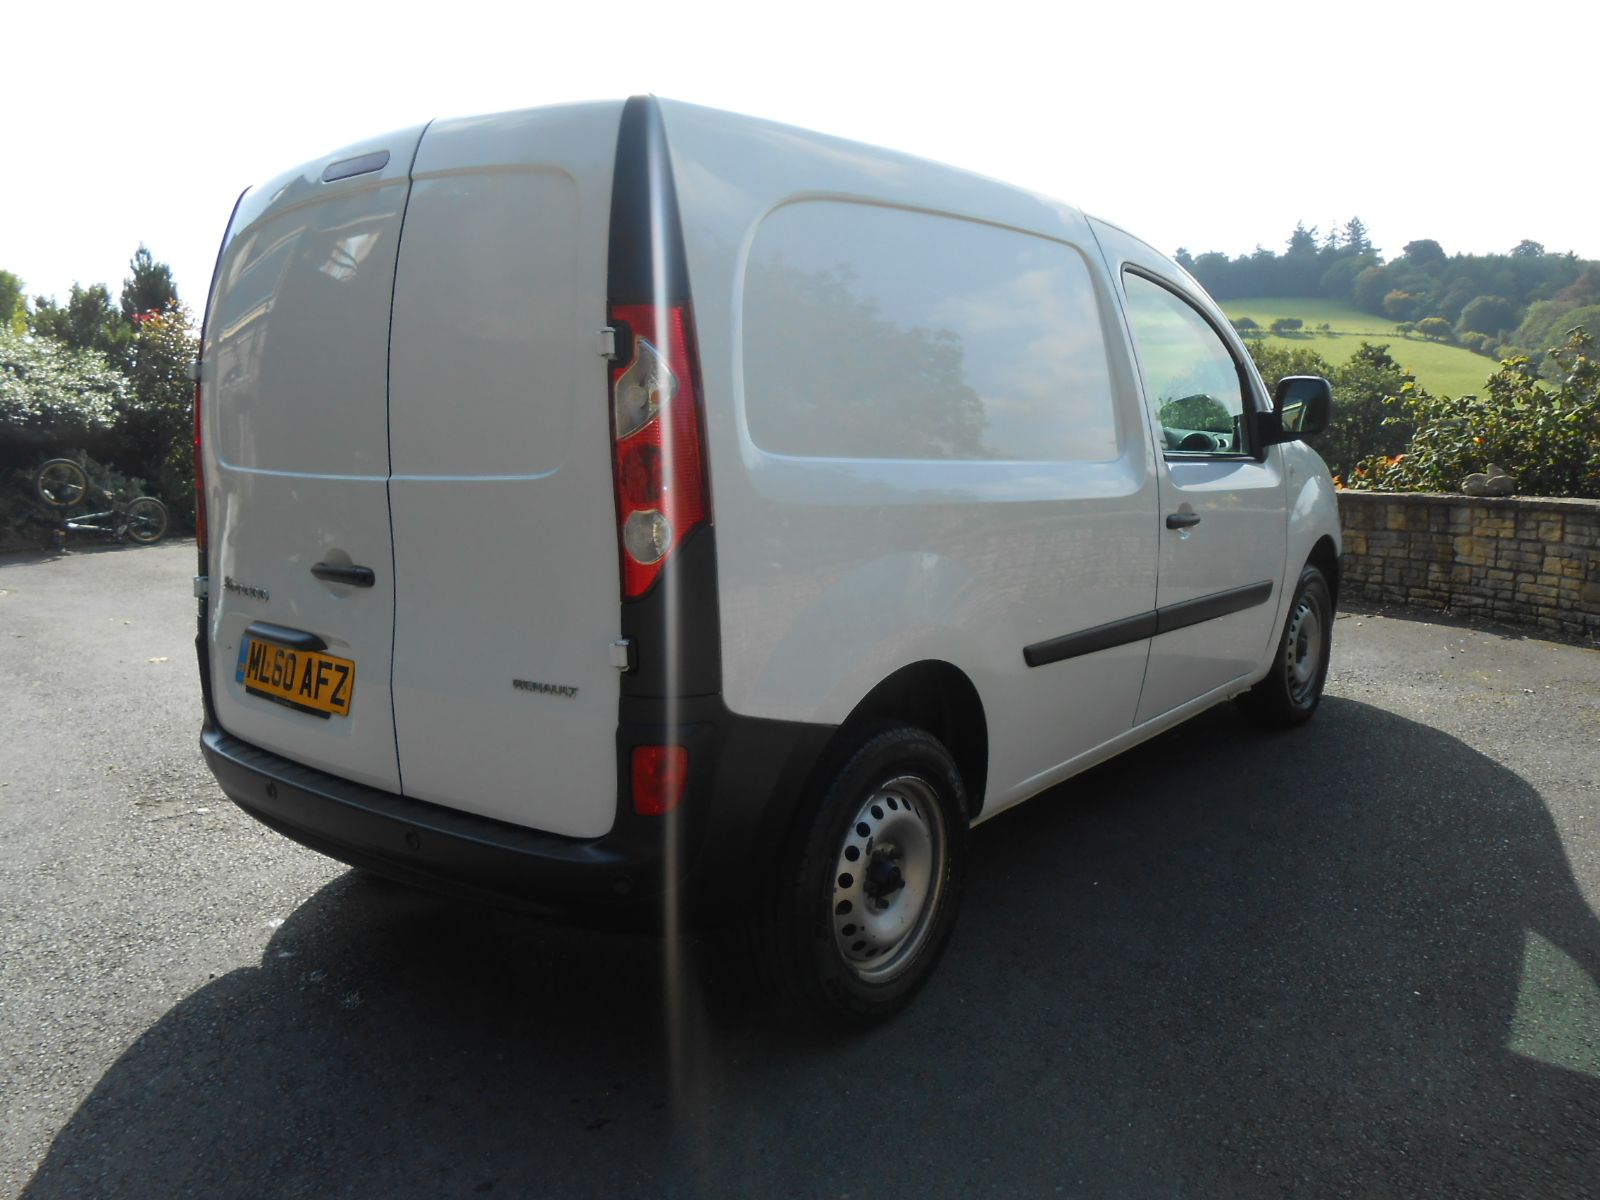 renault kangoo 1 5 dci ml20 car for sale llanidloes powys. Black Bedroom Furniture Sets. Home Design Ideas